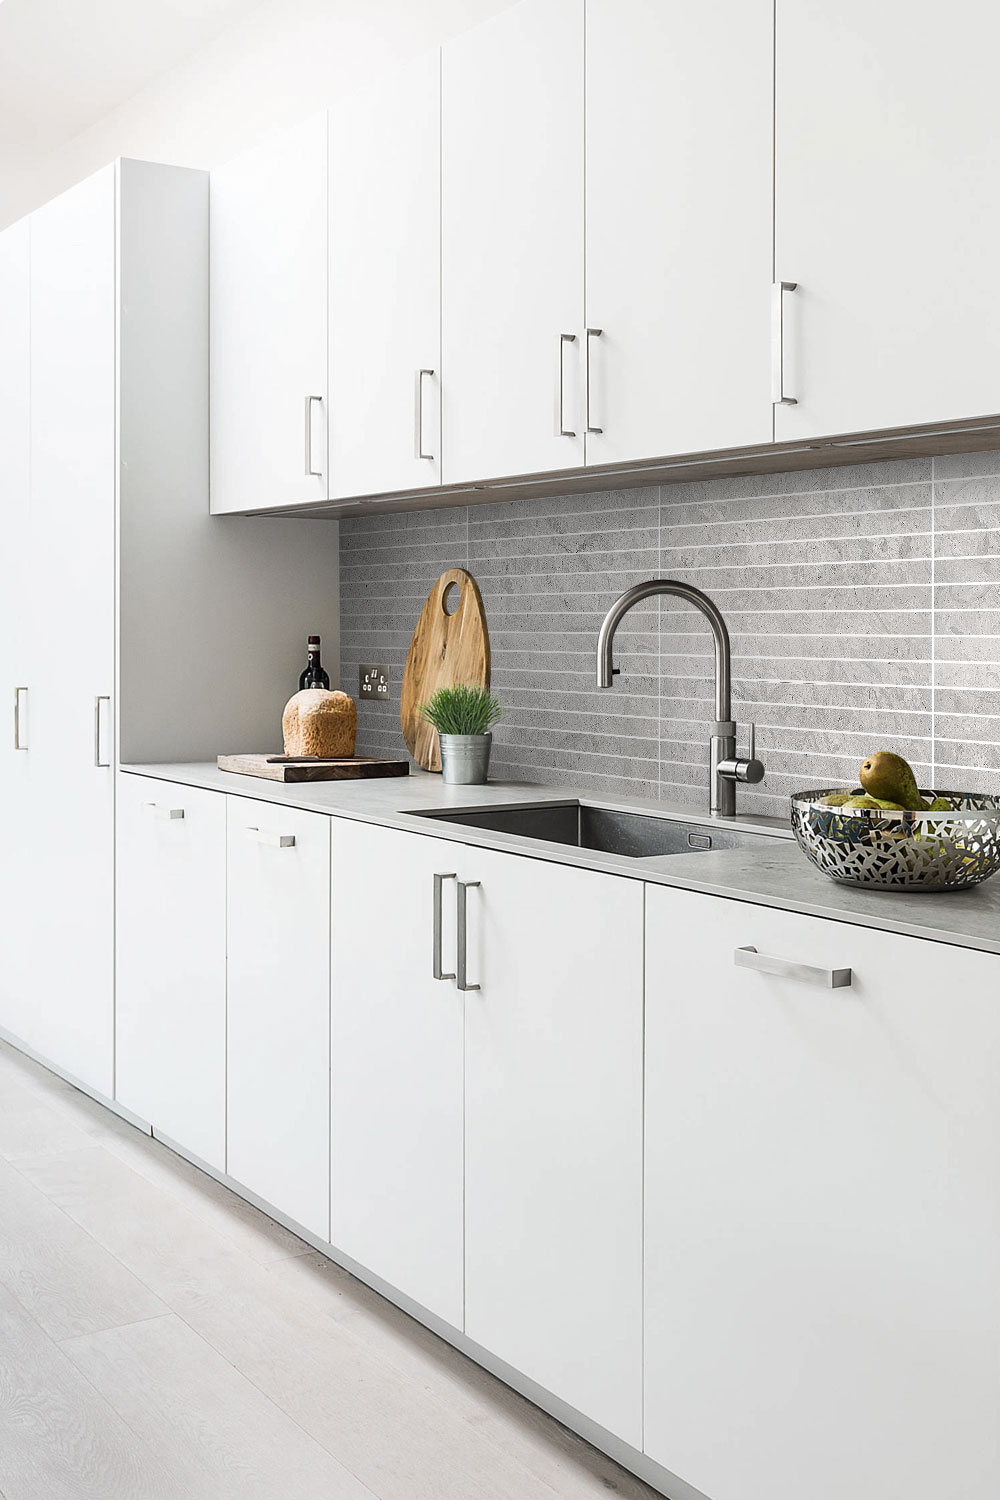 Contemporary Kitchen White Cabinets Gray Backsplash Tile